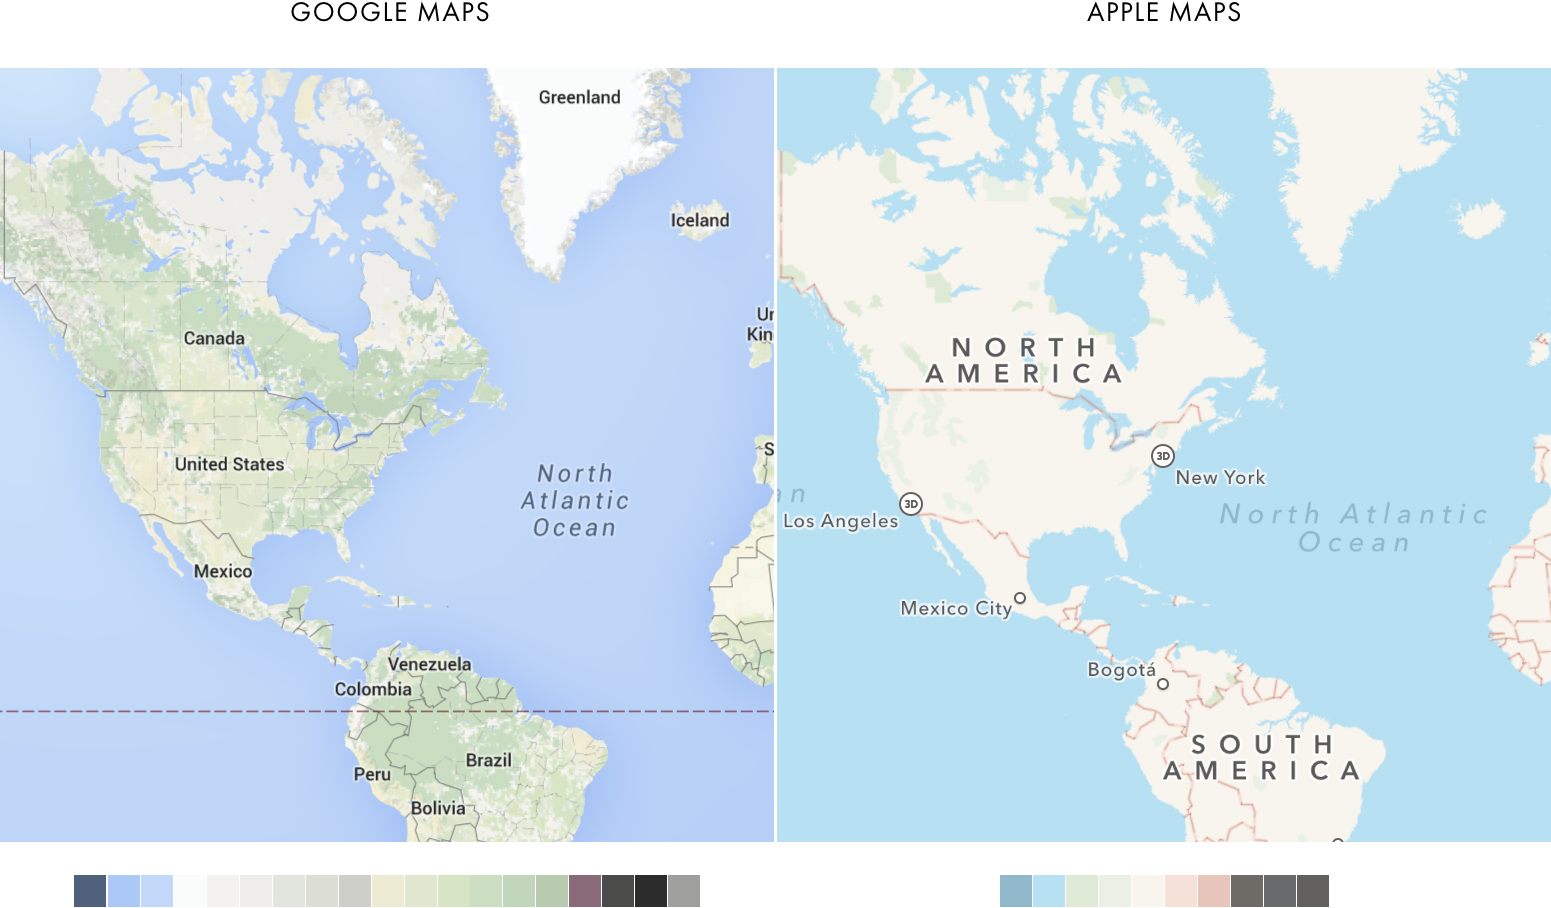 apple-map-and-google-map-who-is-the-best_01